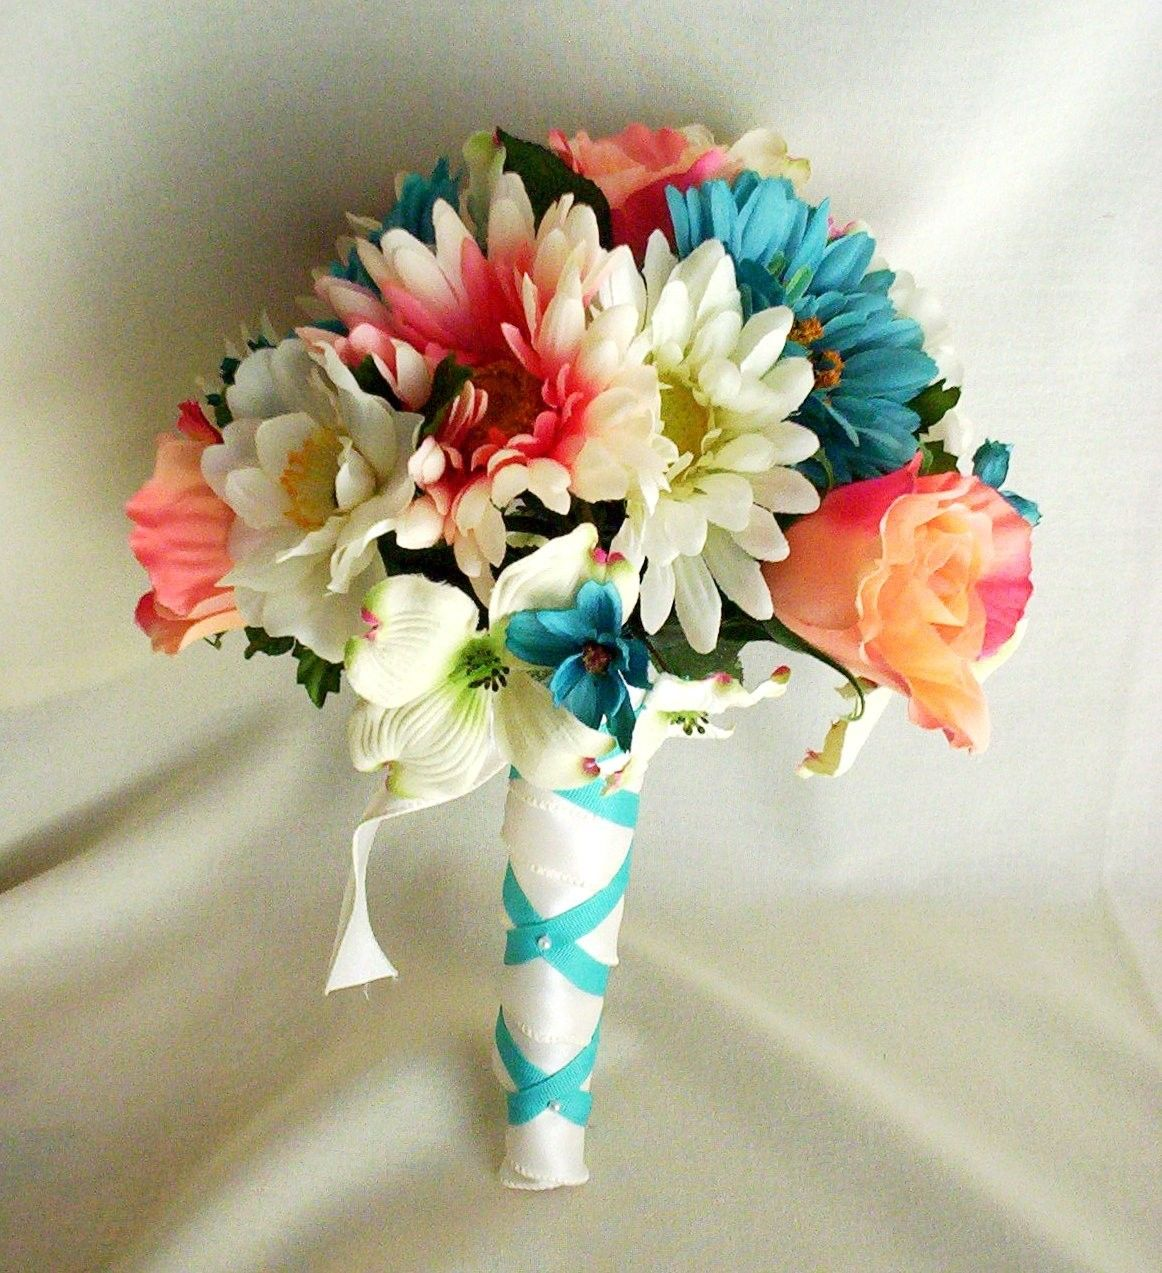 Beach destination wedding flowers package coral bridal bouquet beach destination wedding flowers package coral bridal bouquet turquoise malibu designed bridal party accessories custom for amy izmirmasajfo